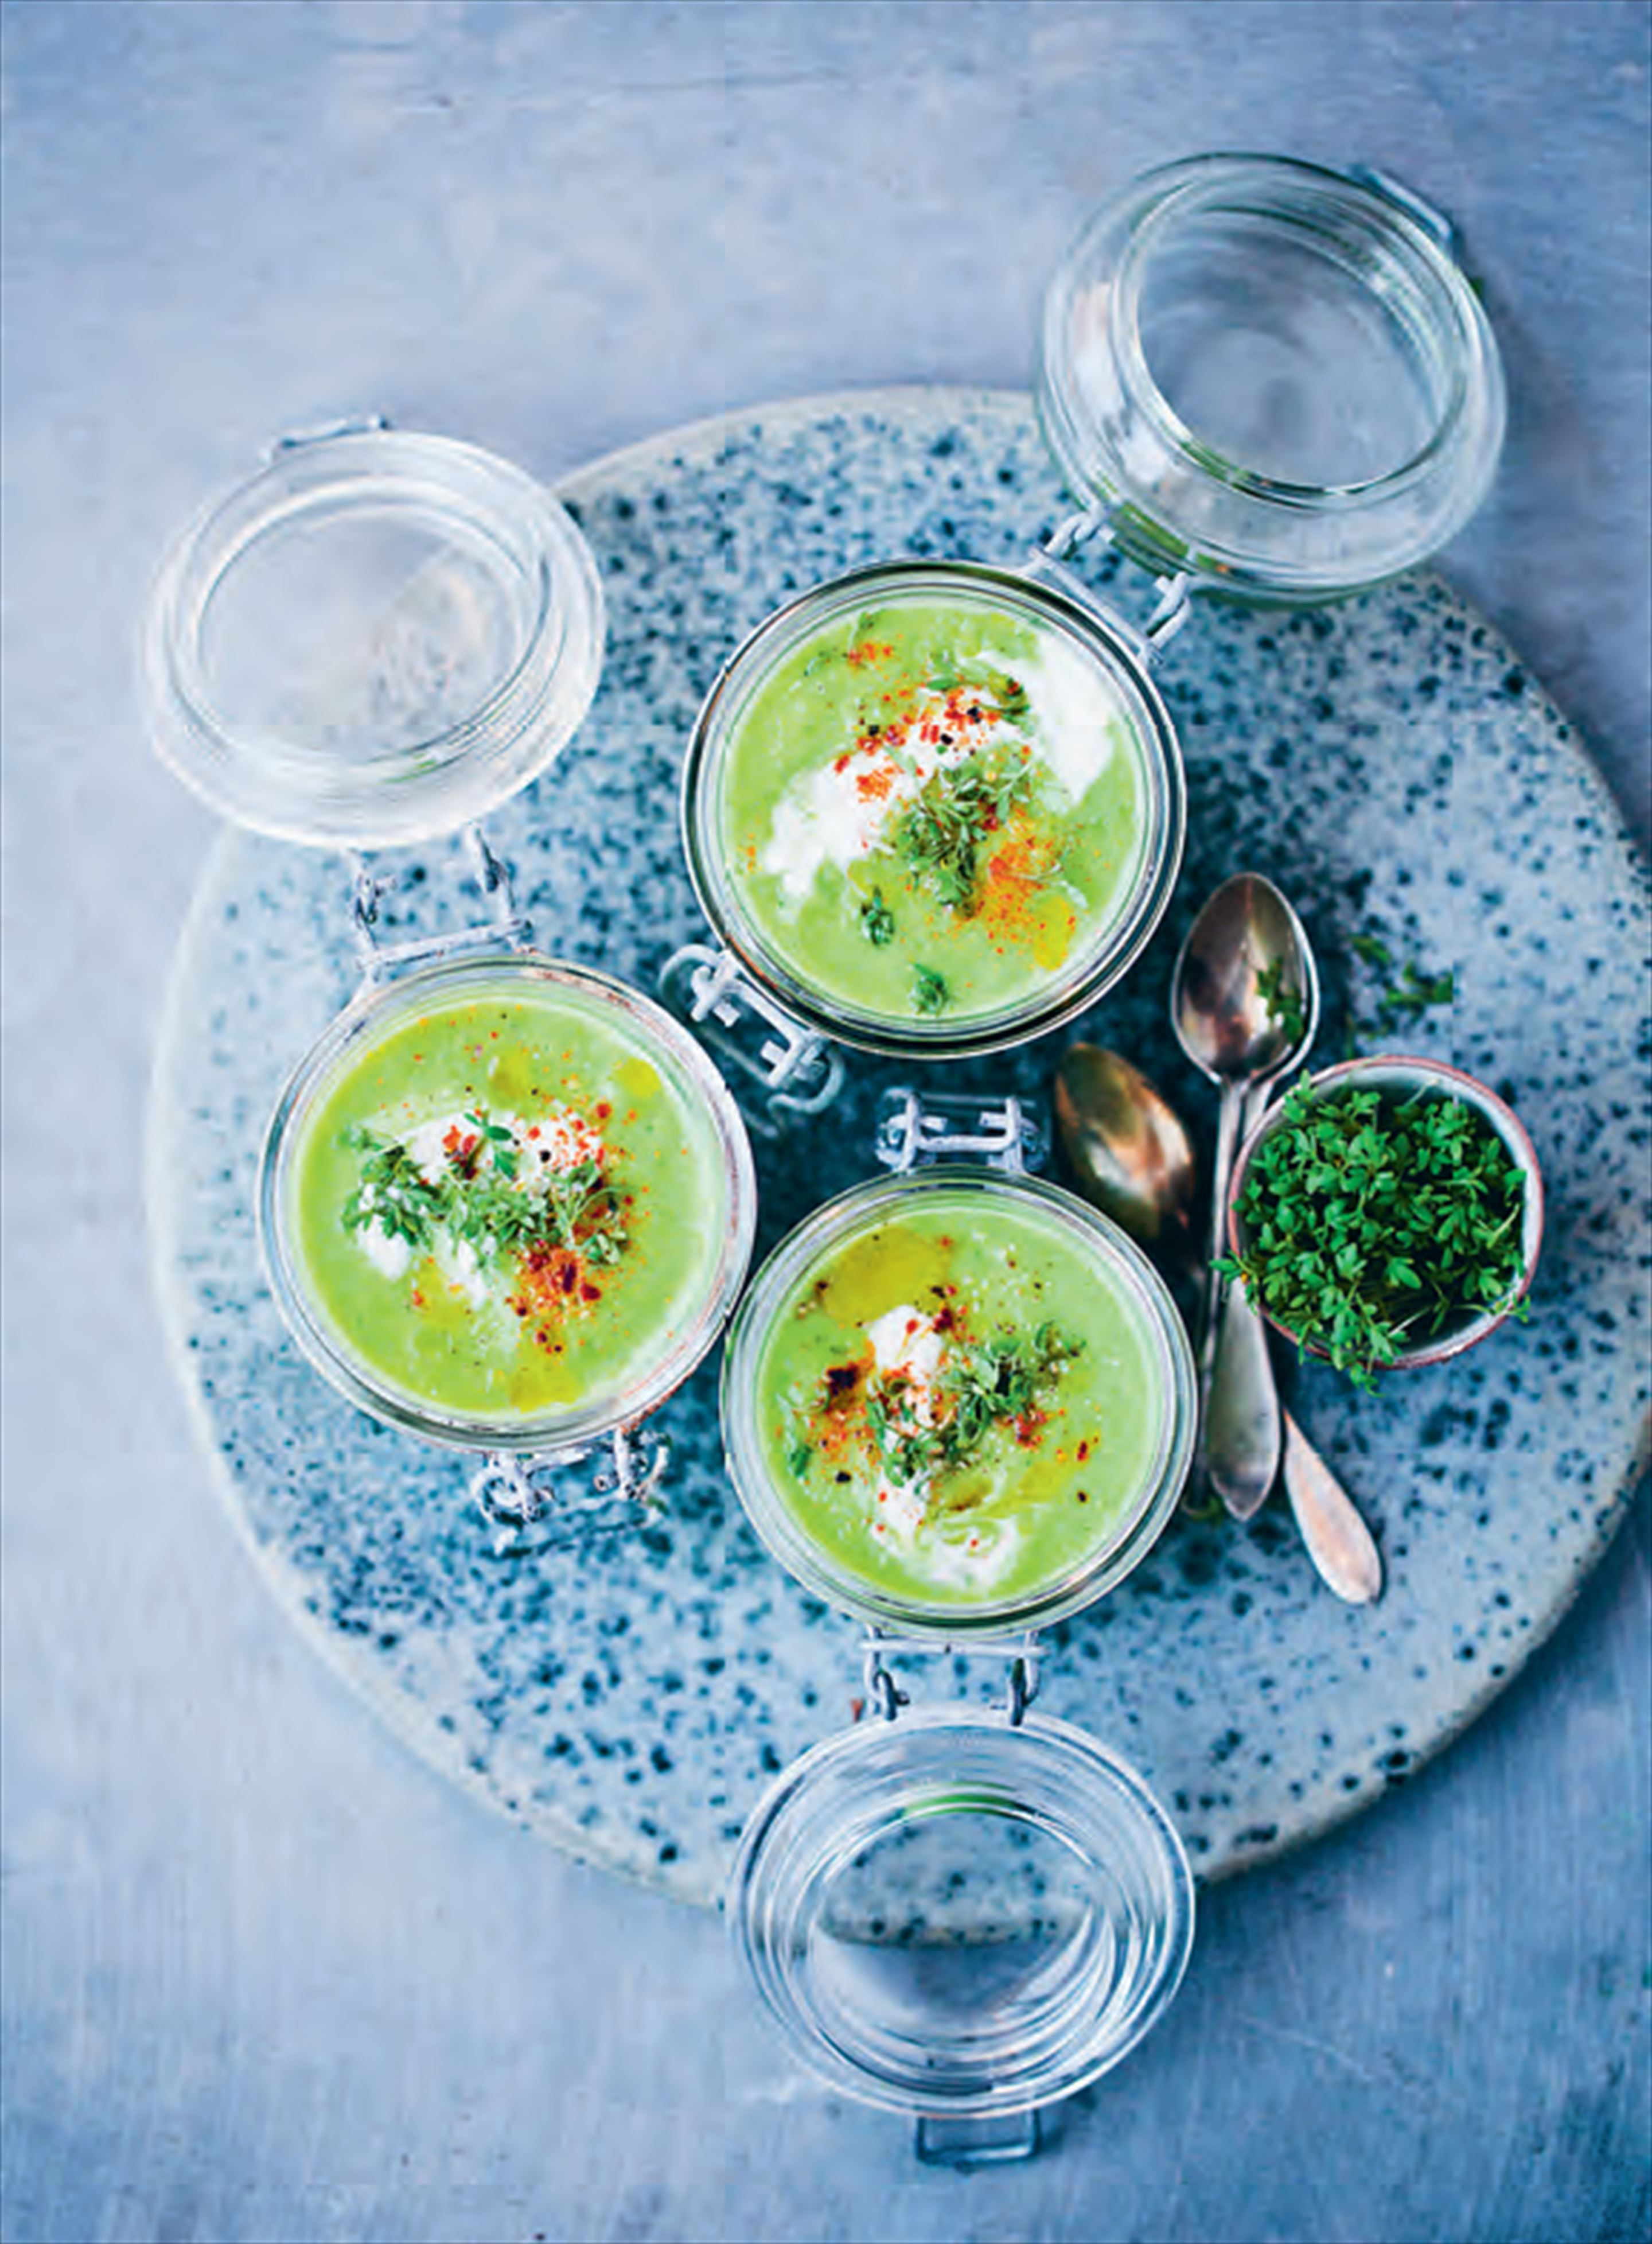 Green gazpacho smoothie